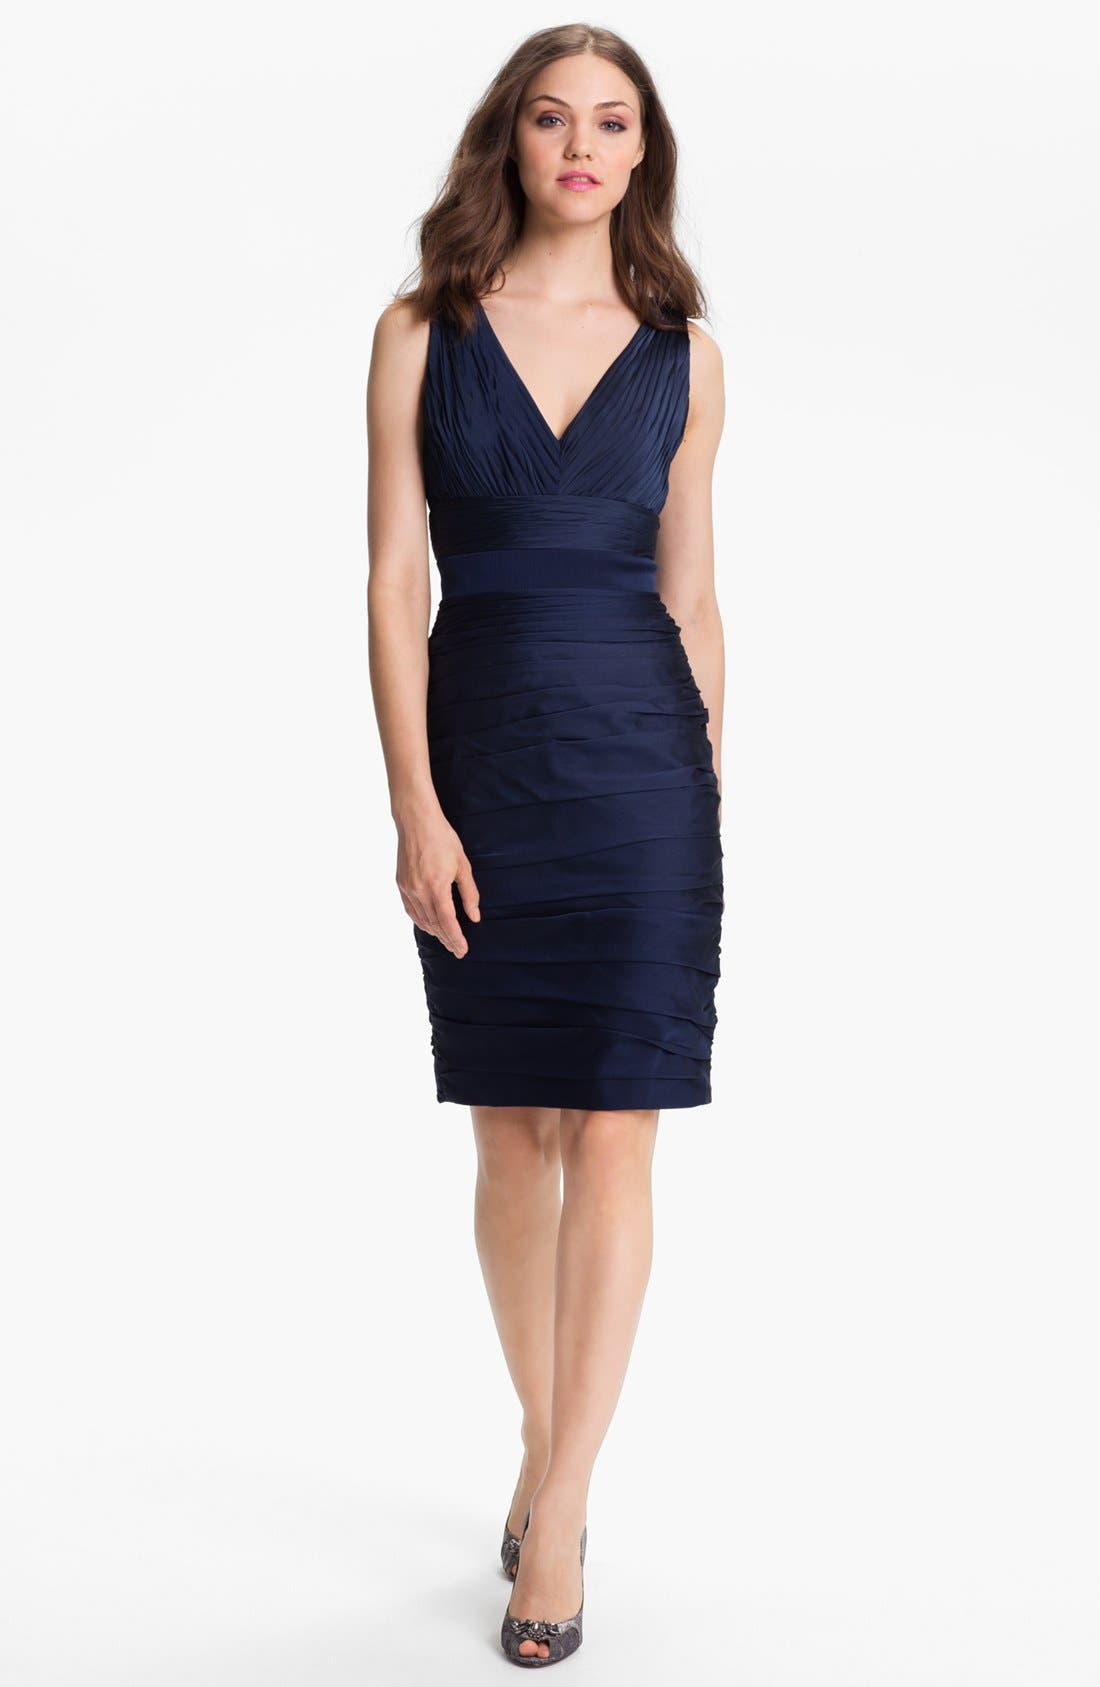 Alternate Image 1 Selected - ML Monique Lhuillier Bridesmaids V-Neck Ruched Chiffon Sheath Dress (Nordstrom Exclusive)